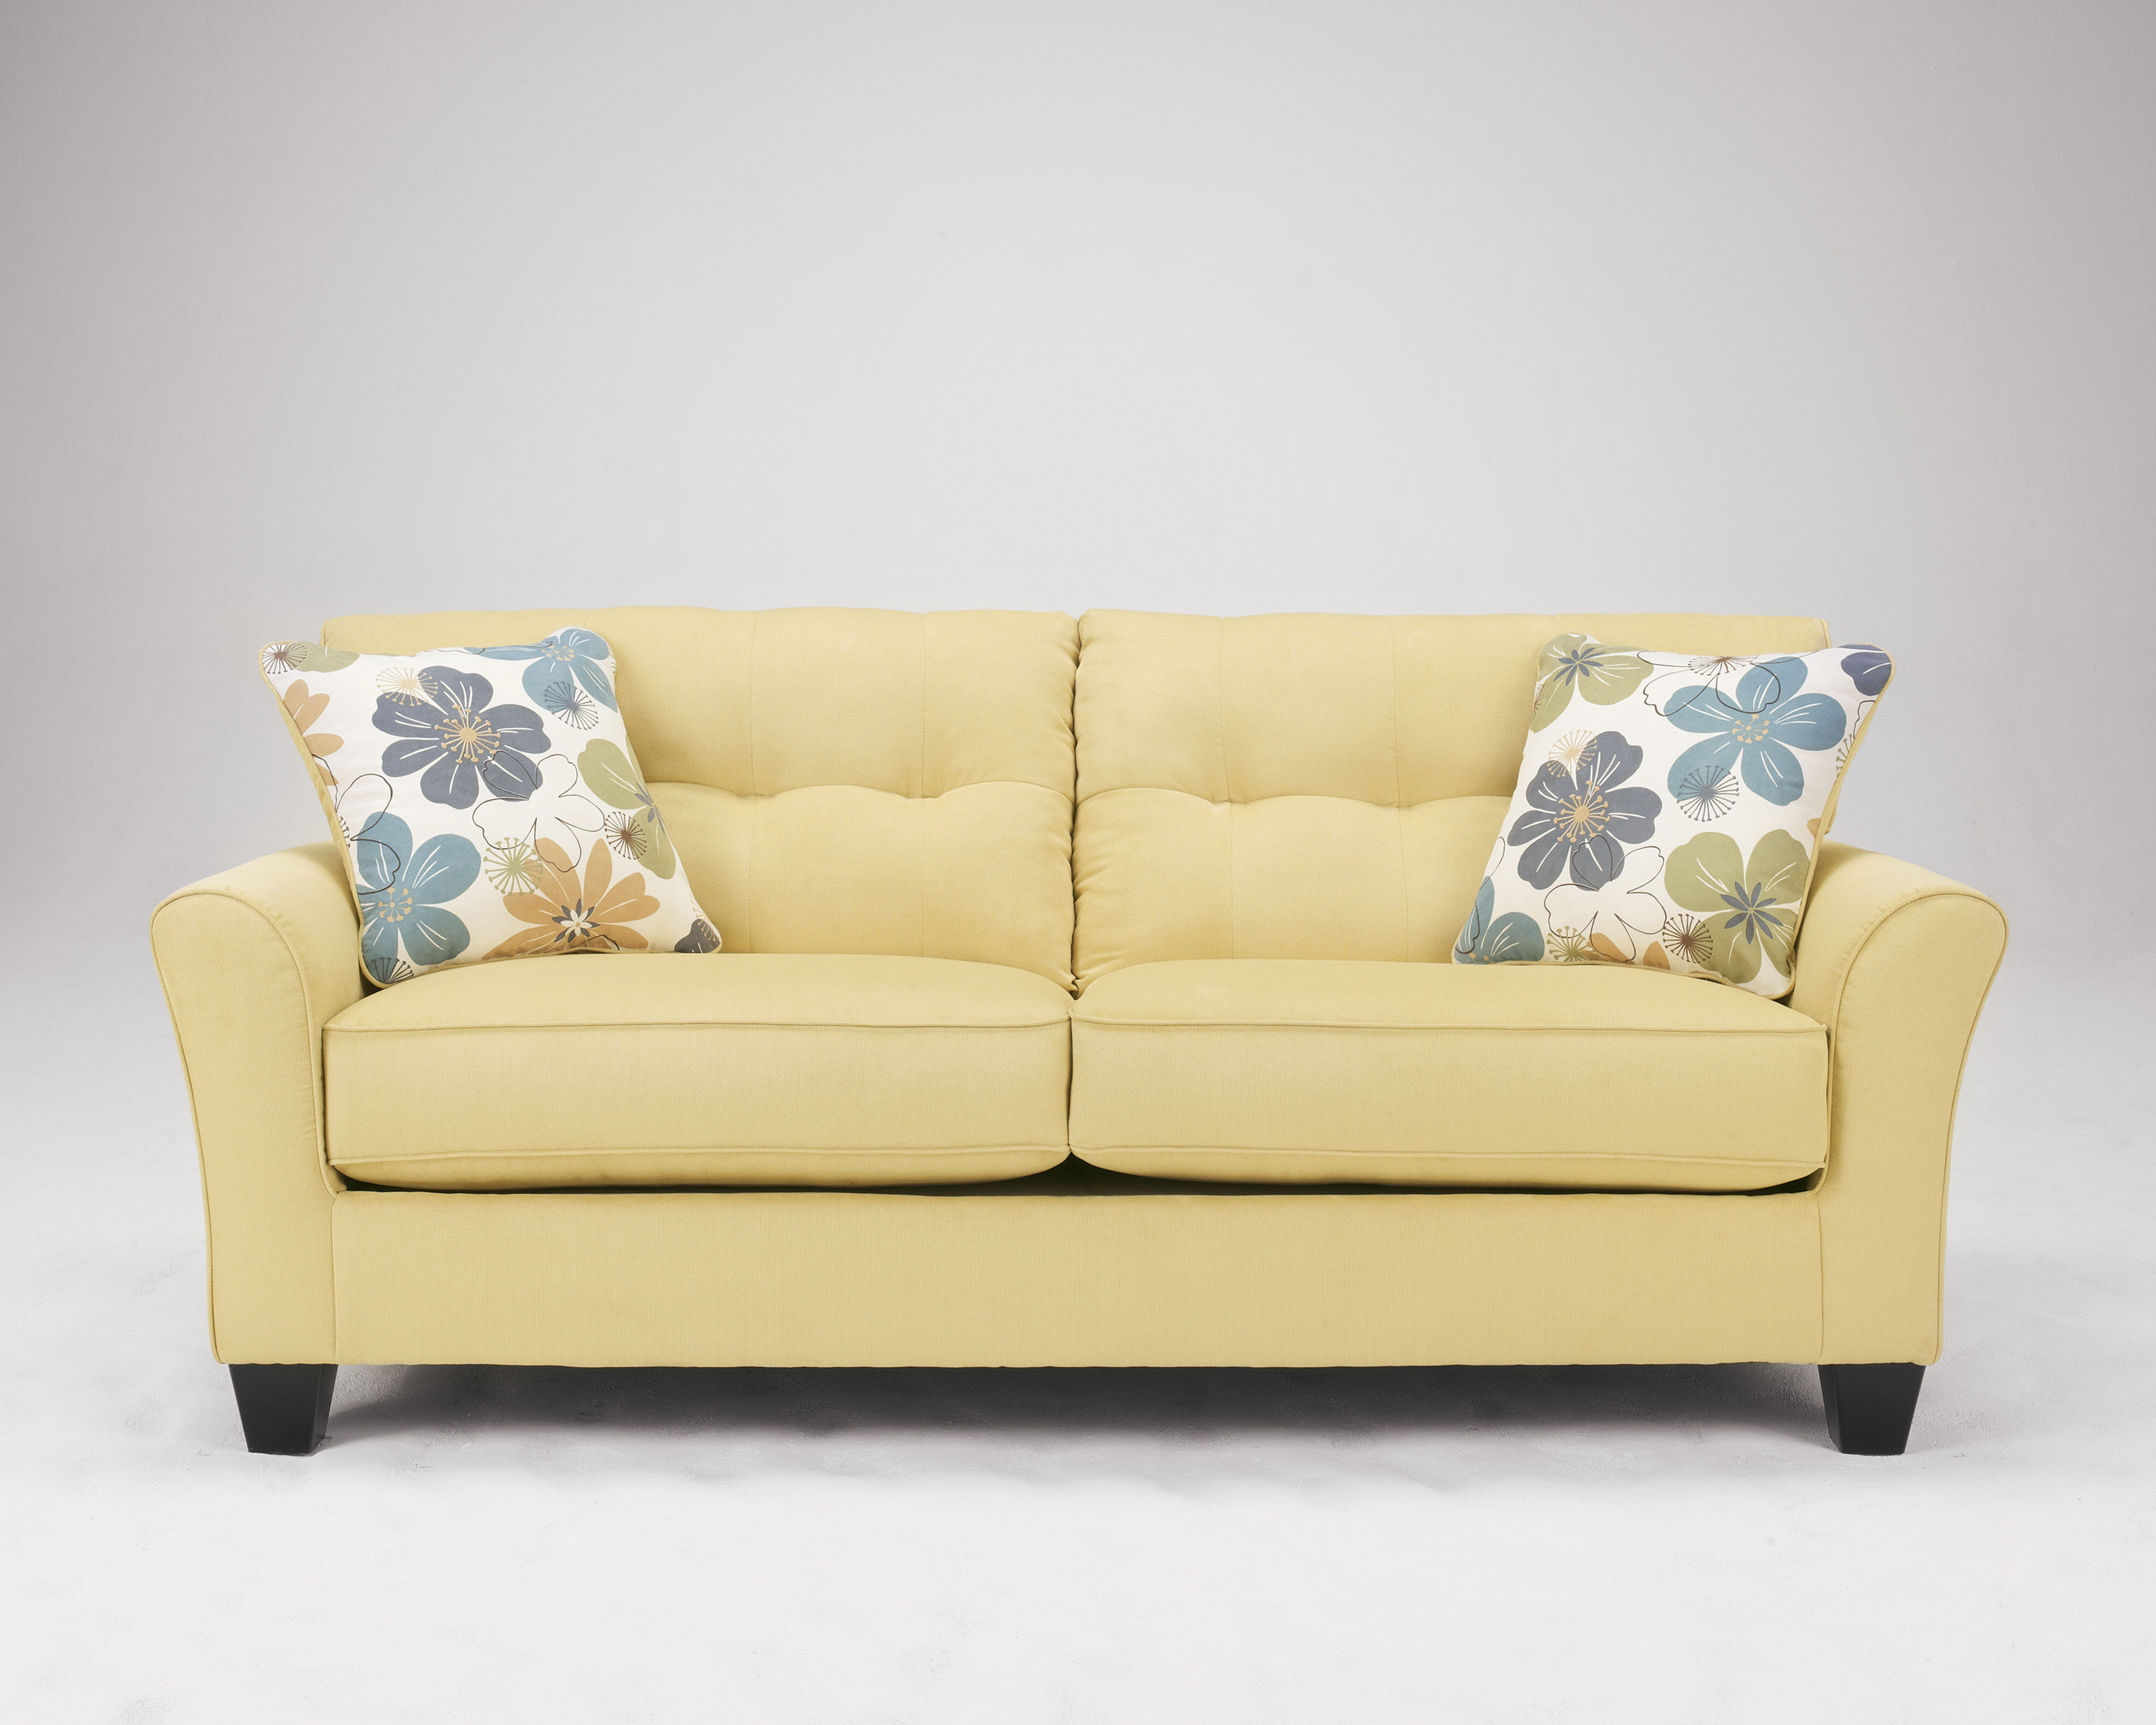 Kylee goldenrod sofa the classy home for Ashley kylee chaise lounge